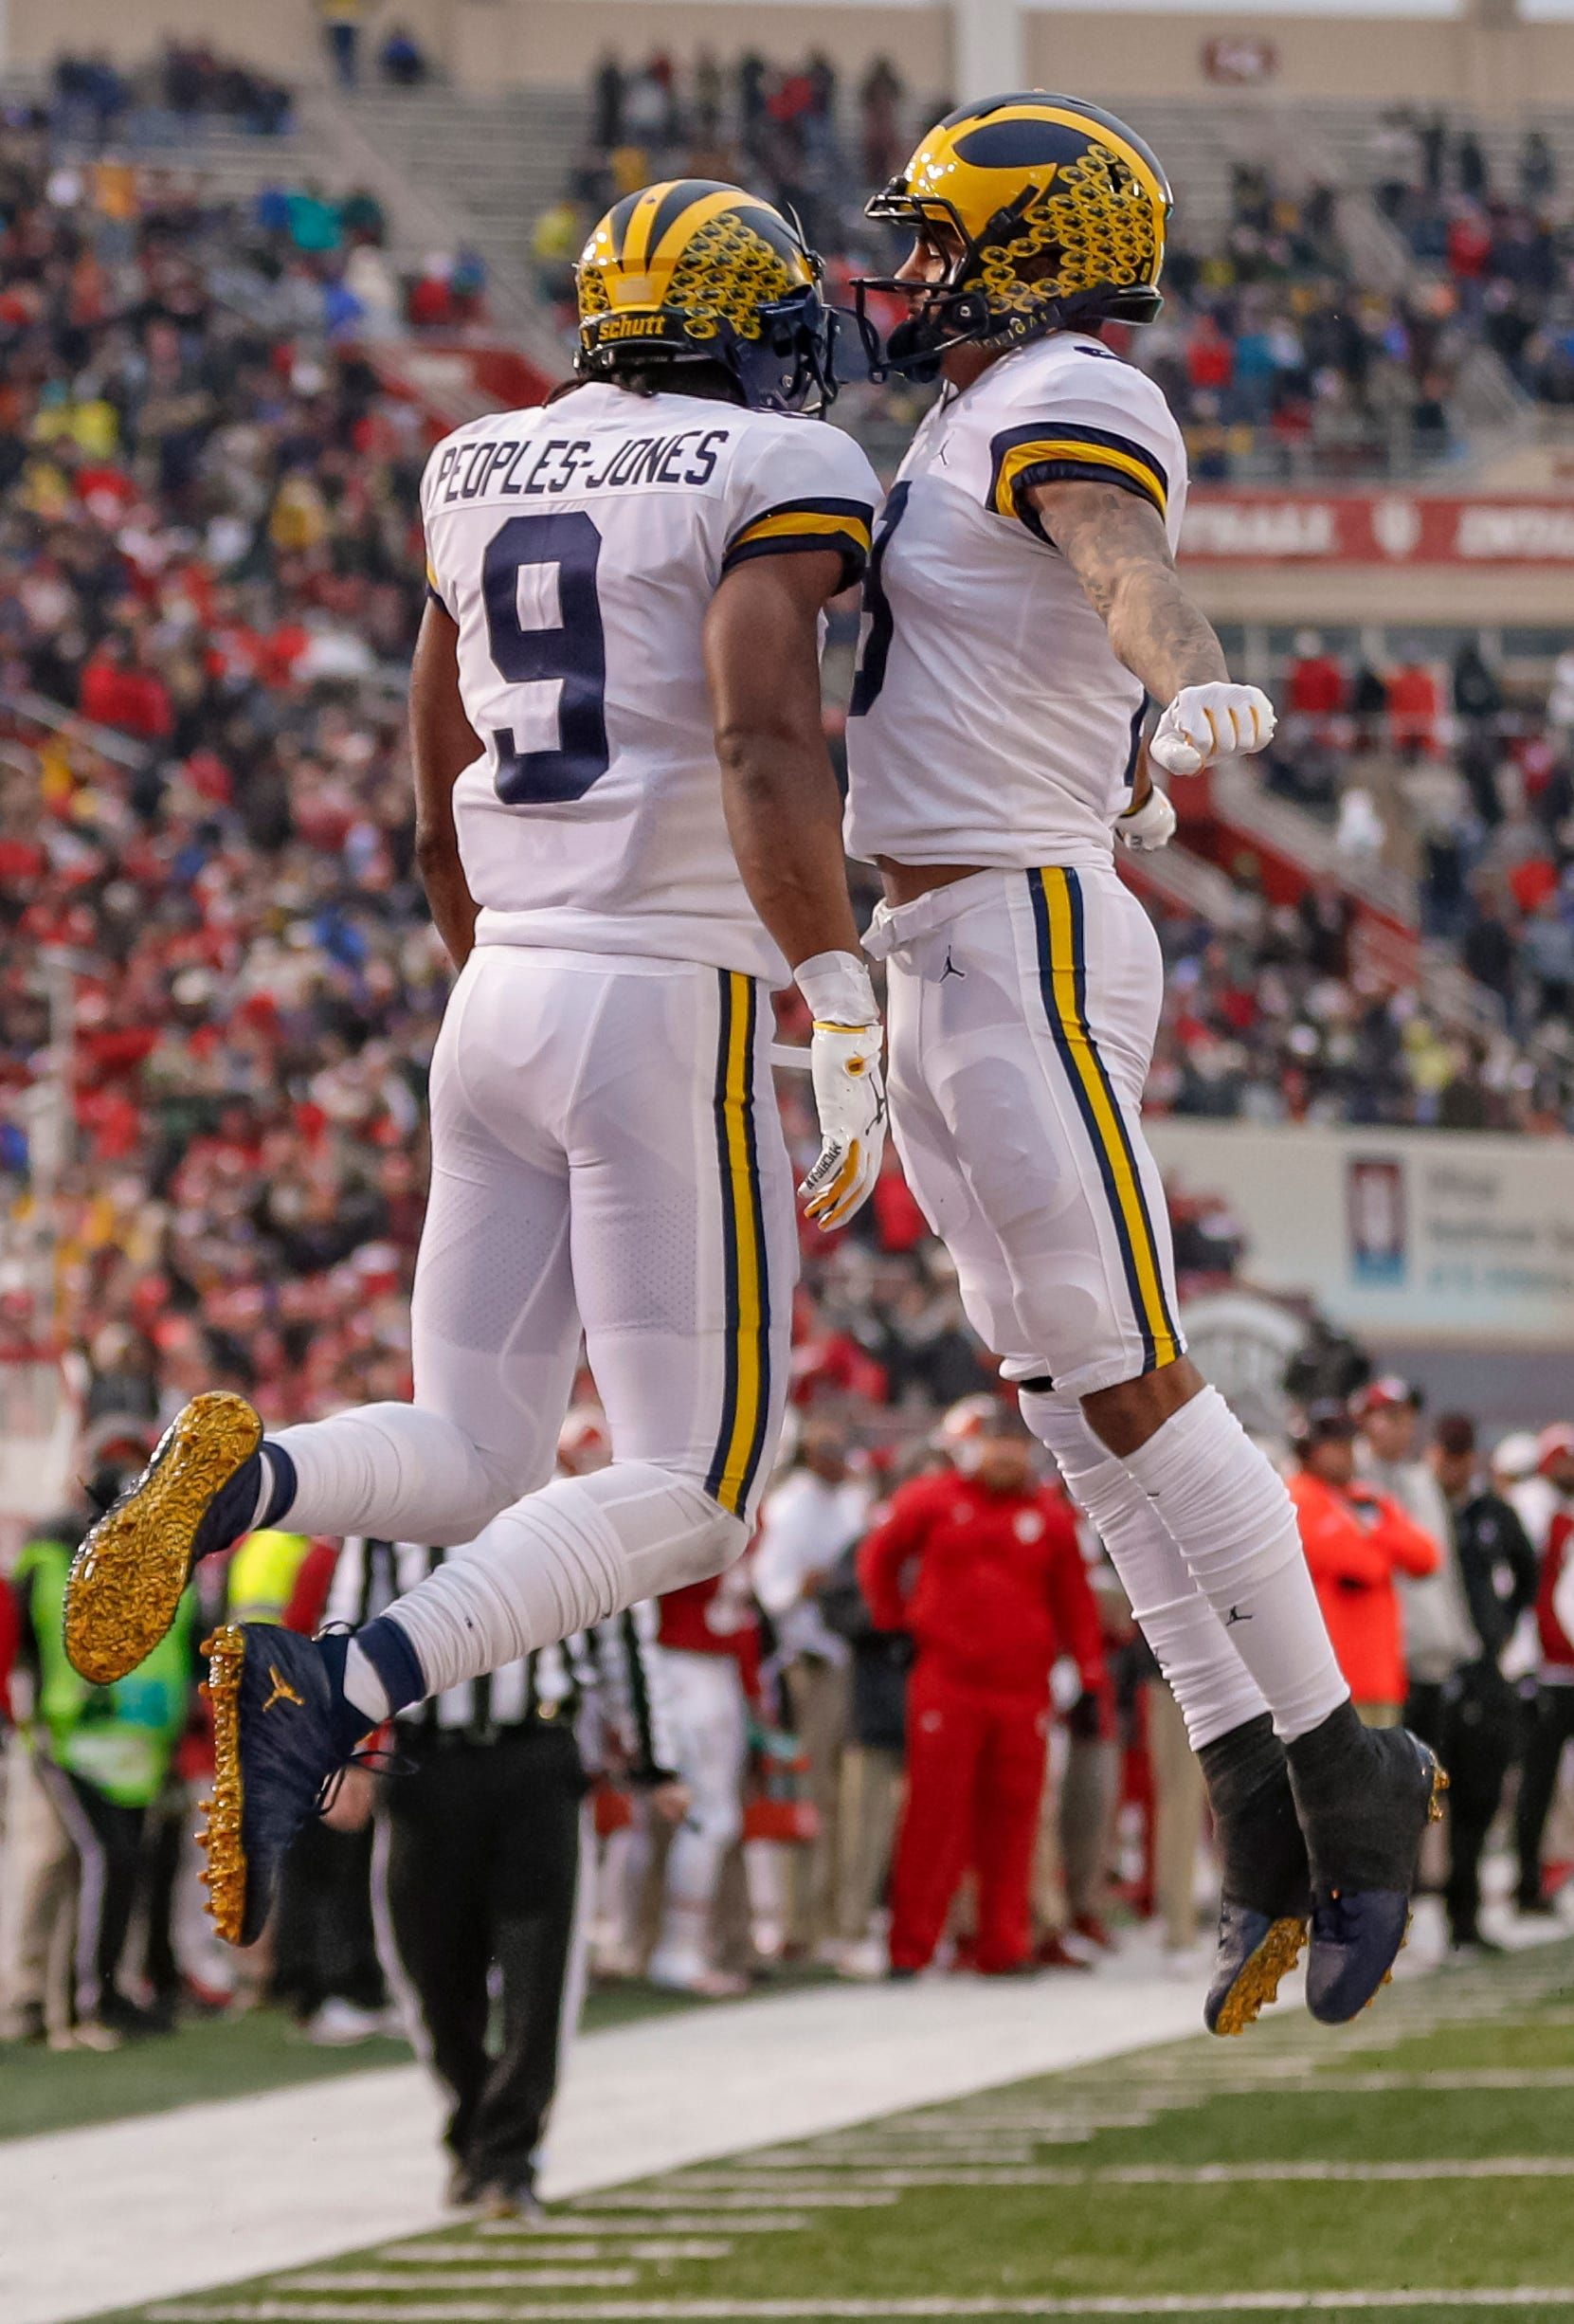 Michigan football blows by indiana will offense work vs